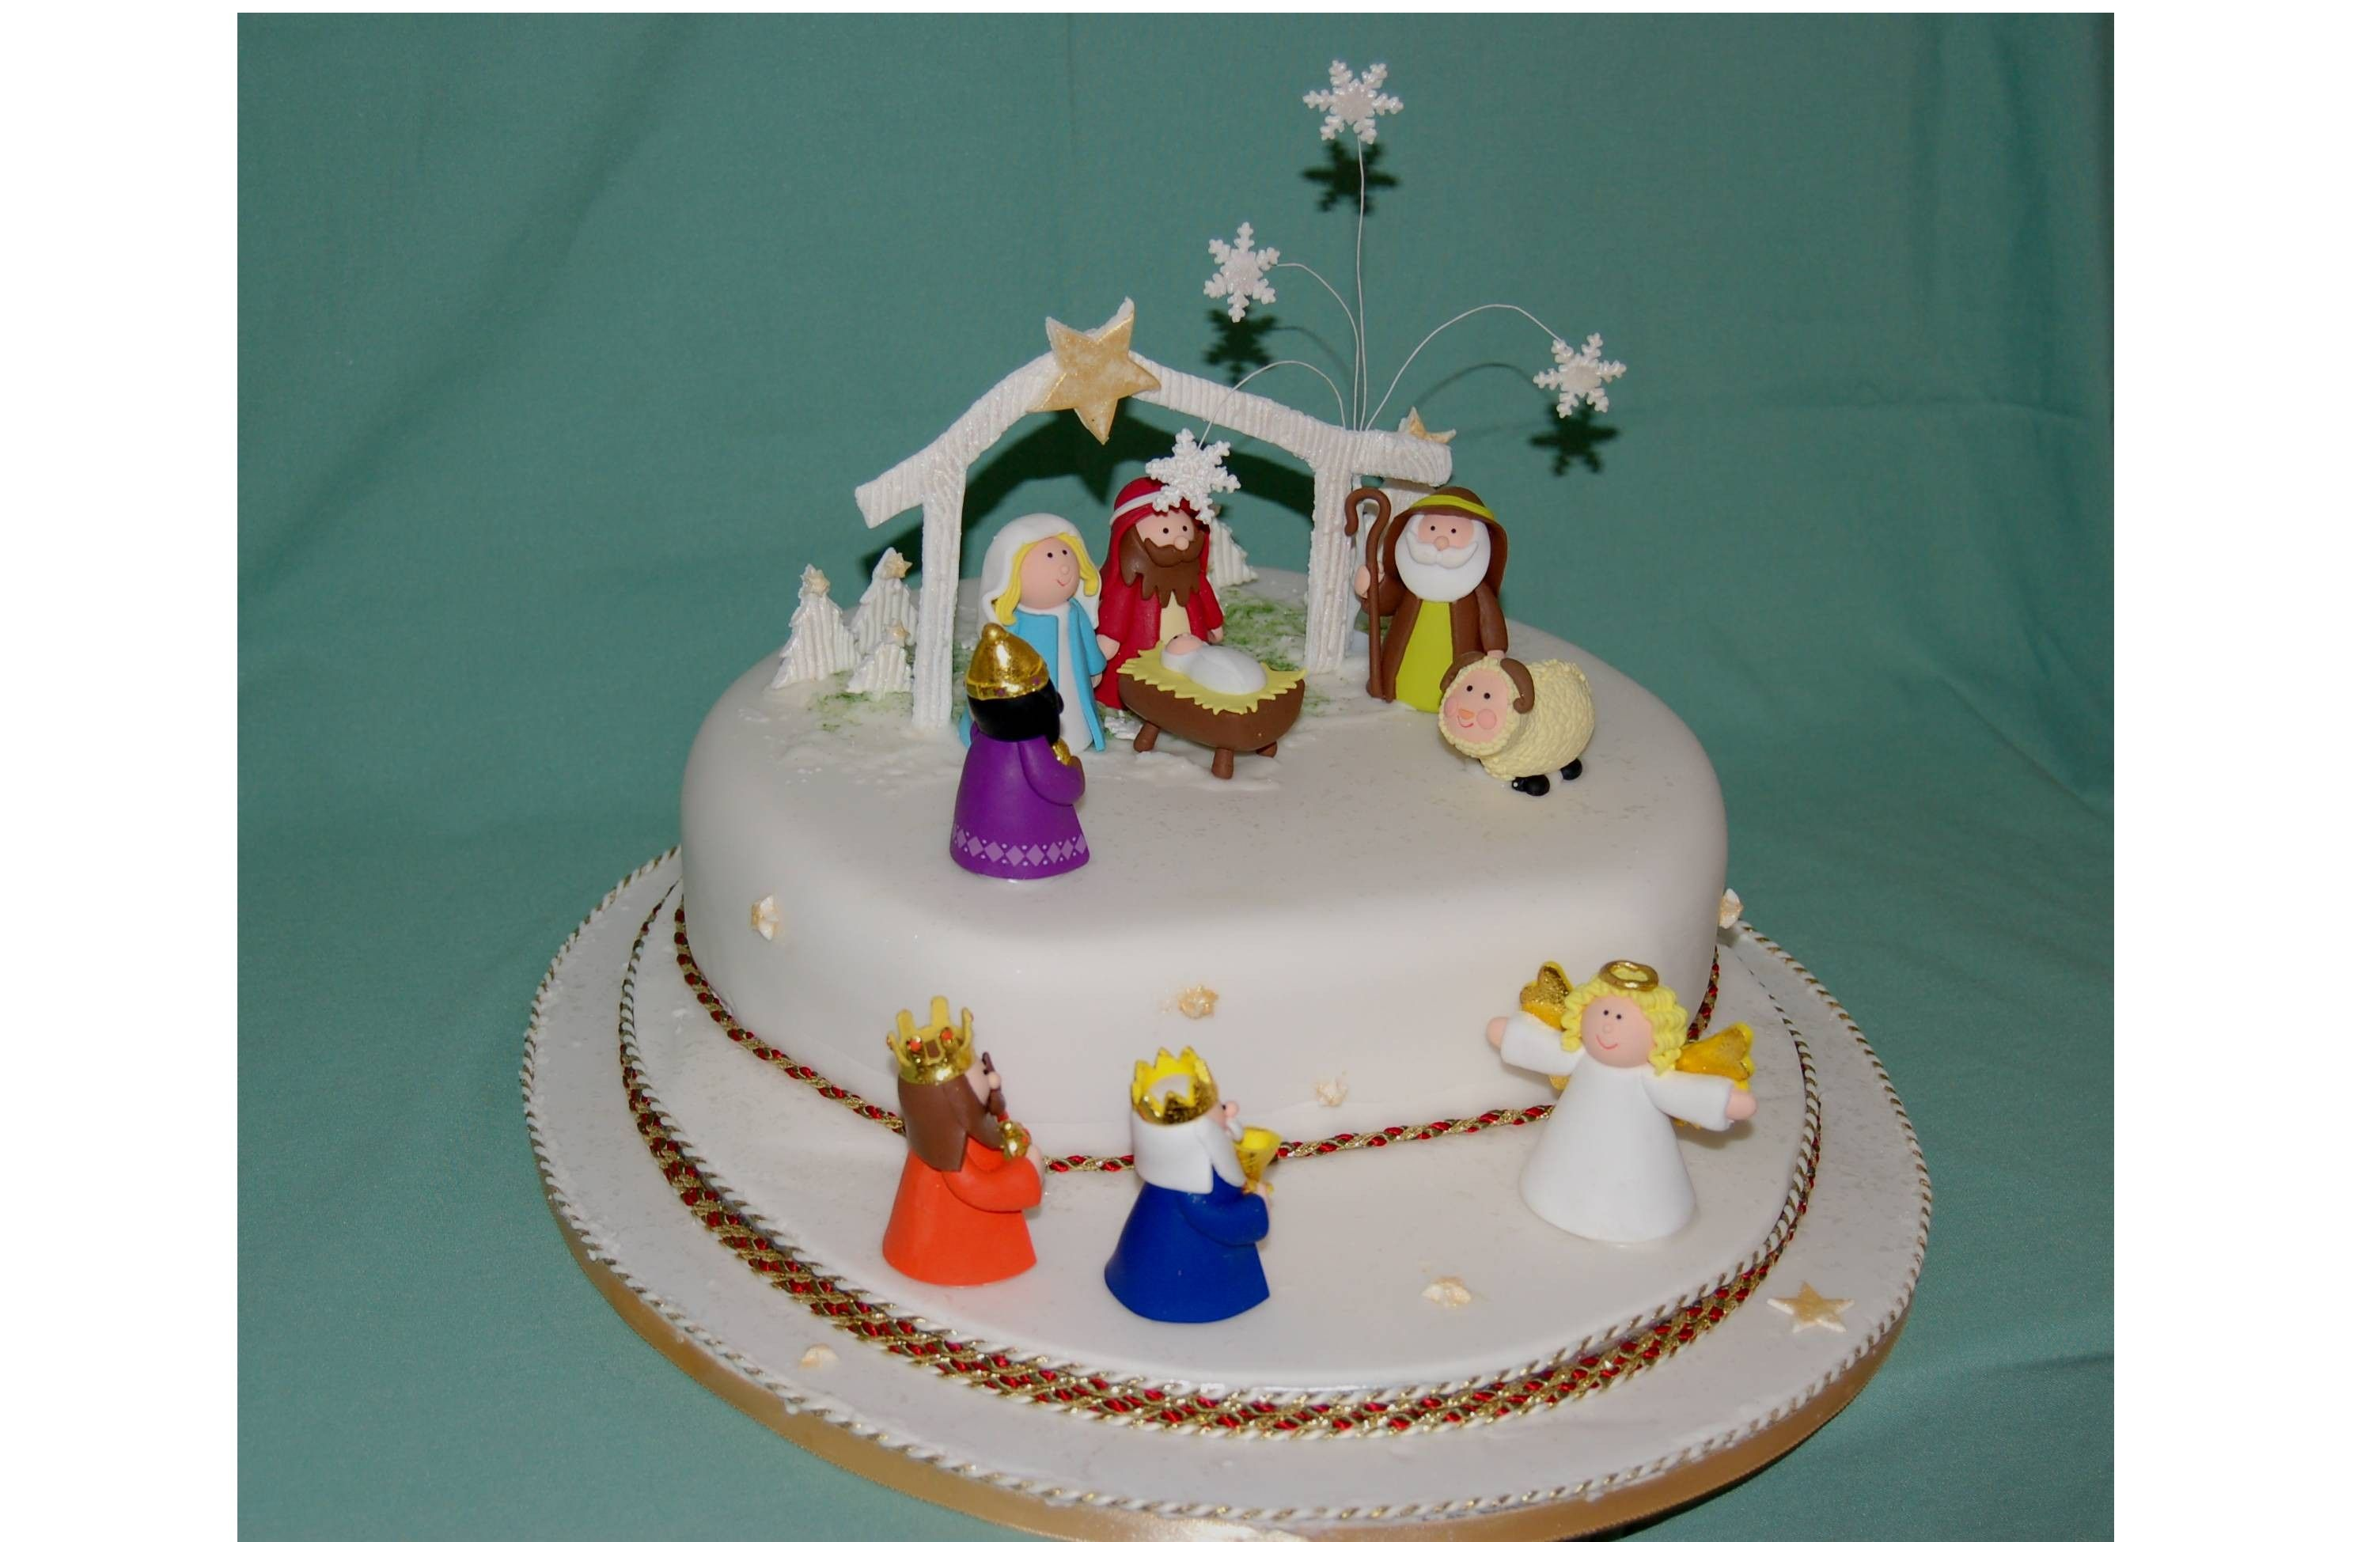 Nativity Cake Decorations